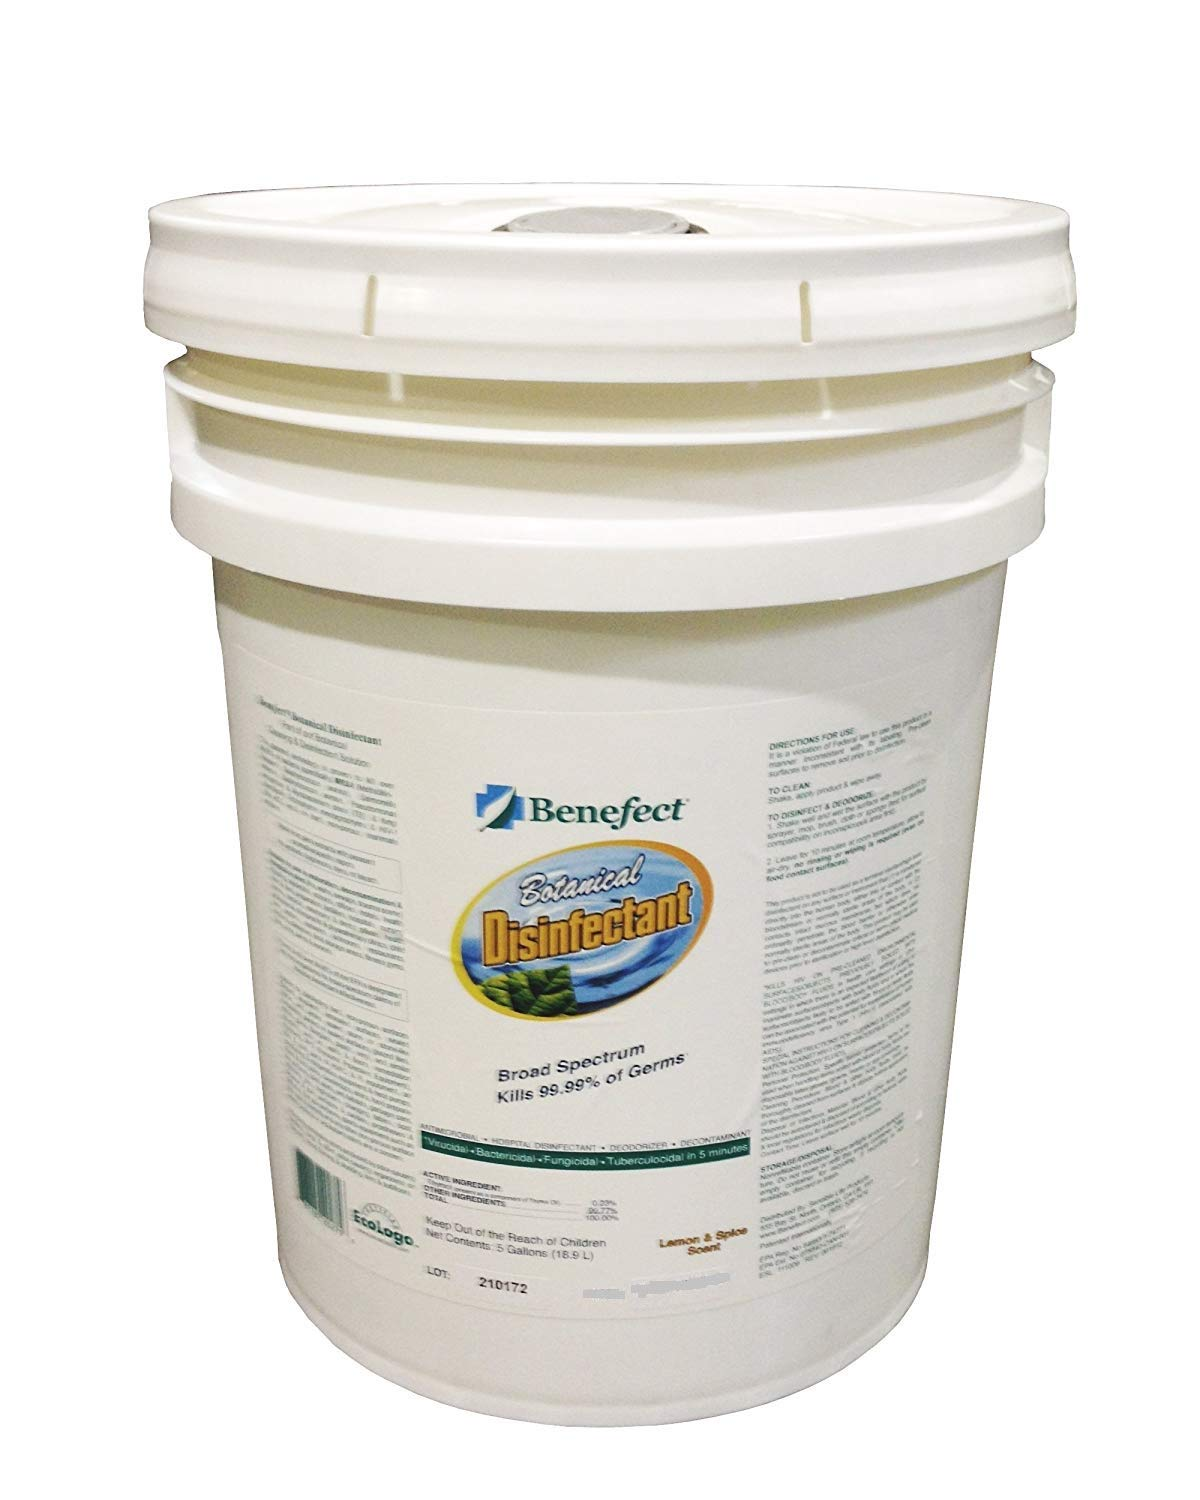 Benefect CD02PL Botanical Disinfectant 5 gallons